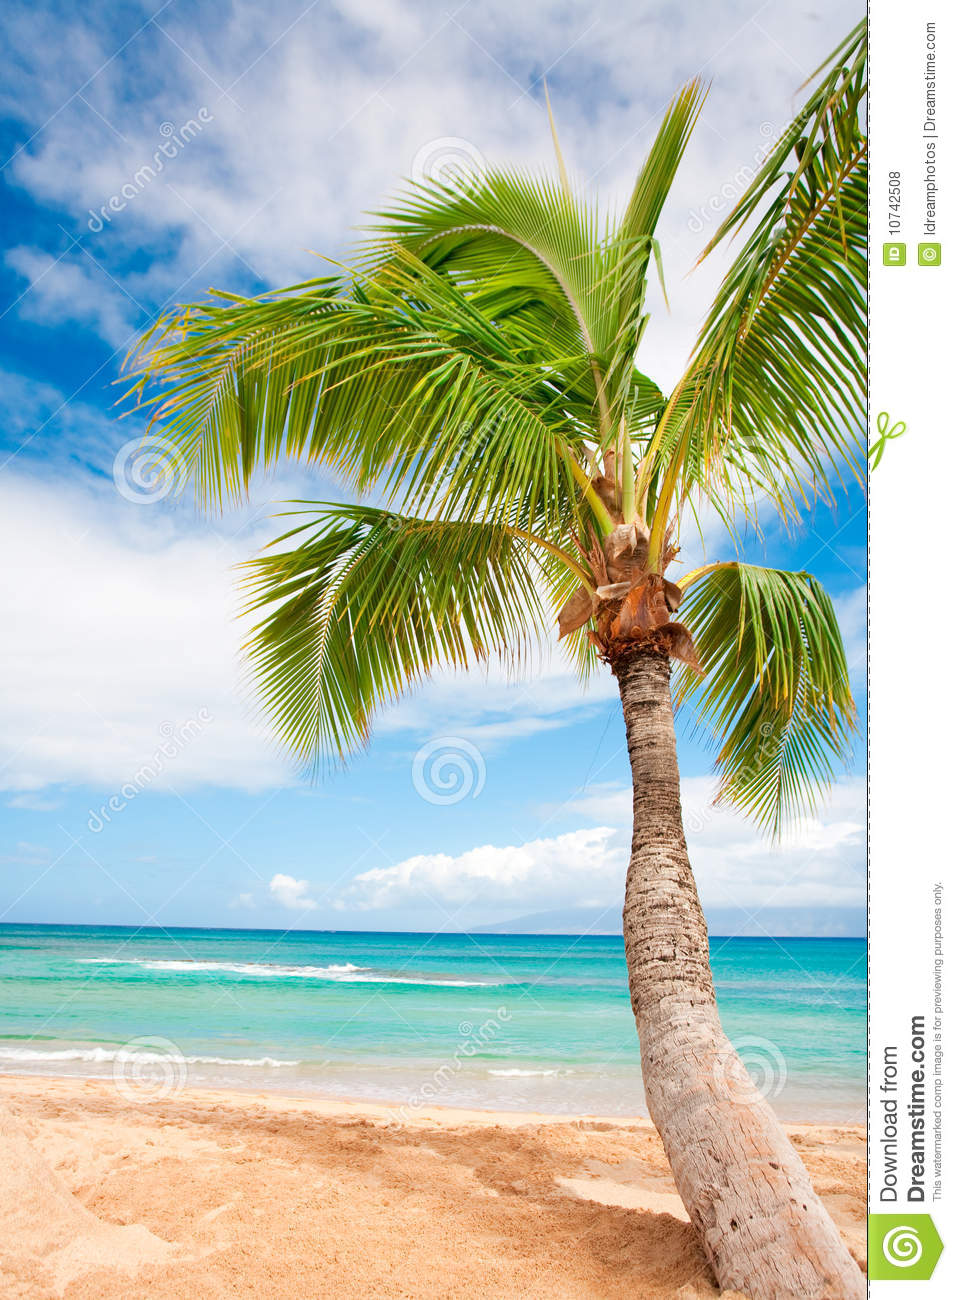 Palm tree beach background stock photo image of beautiful 10742508 palm tree beach background voltagebd